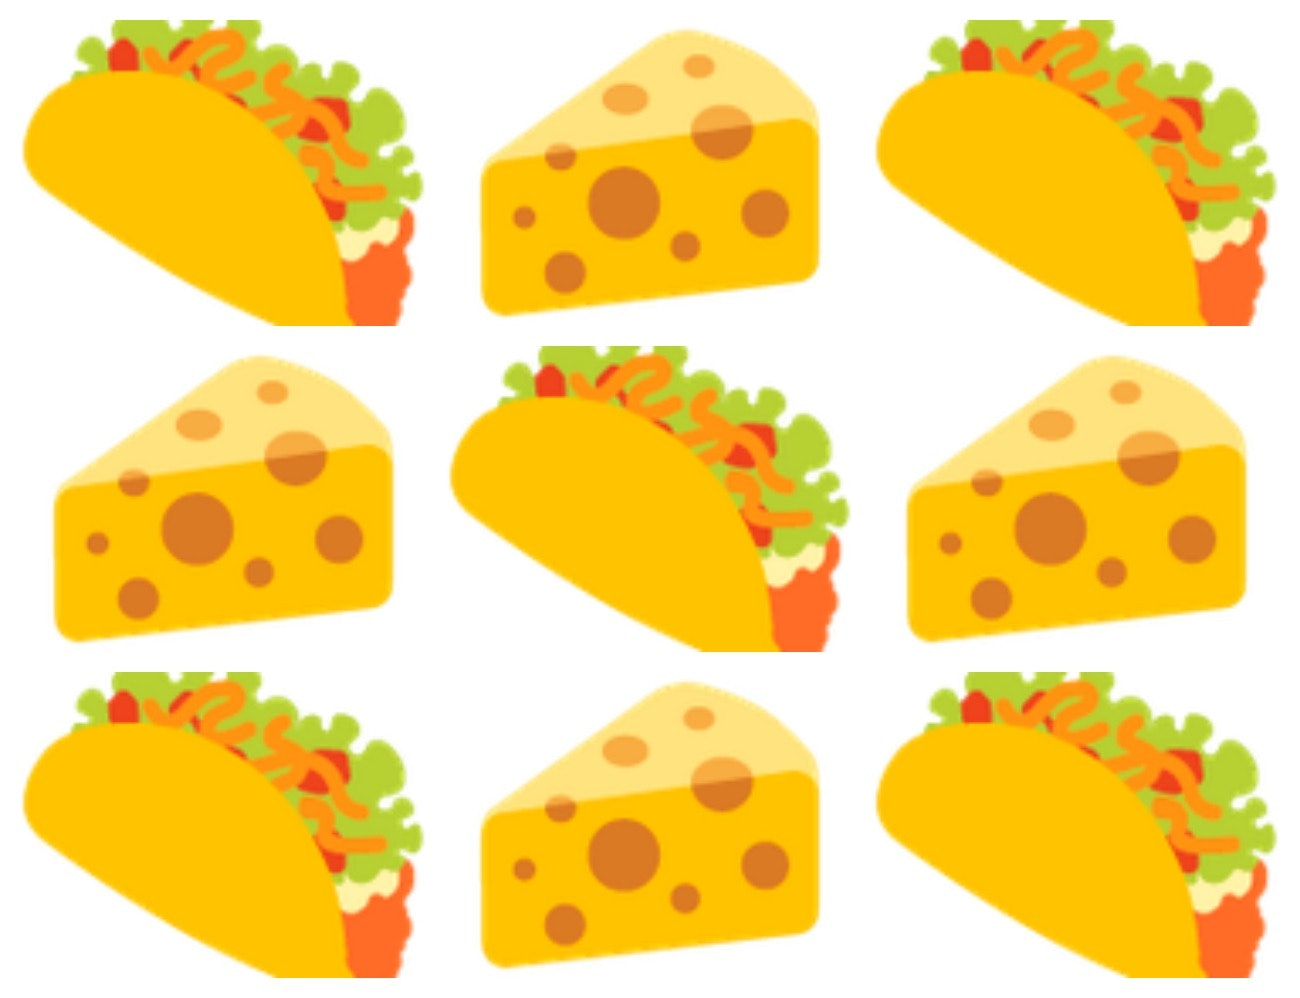 Sparkling Android Emoji Update Finally Brings Taco Emoji Cheese Wedgeto Android Devices Everywhere Android Emoji Update Finally Brings Taco Emoji houzz-03 Praise Hands Emoji